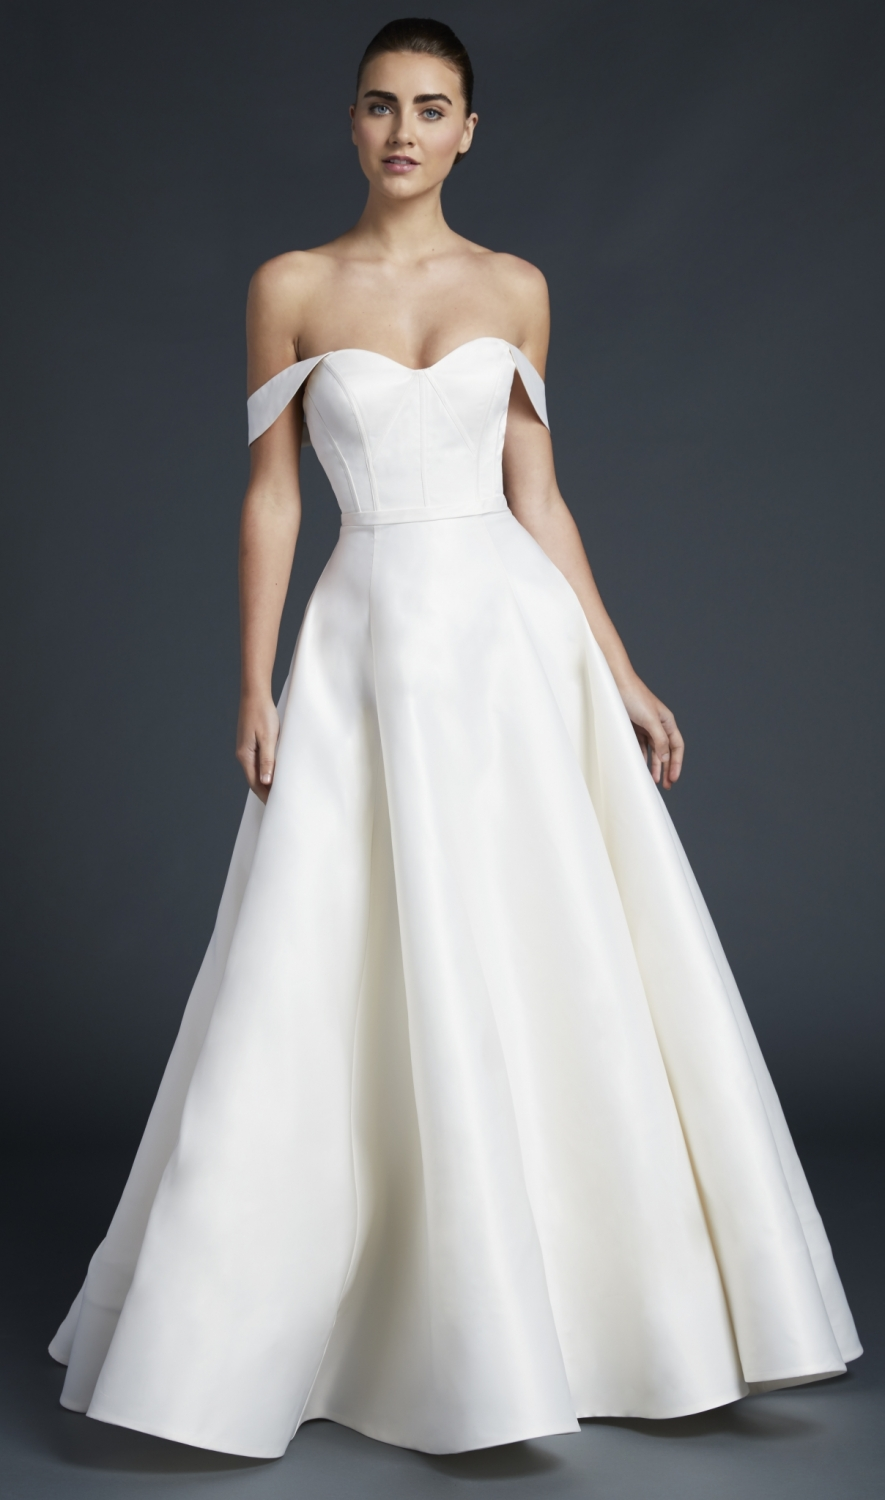 Anne Barge Bridal Fall 2019 Pei